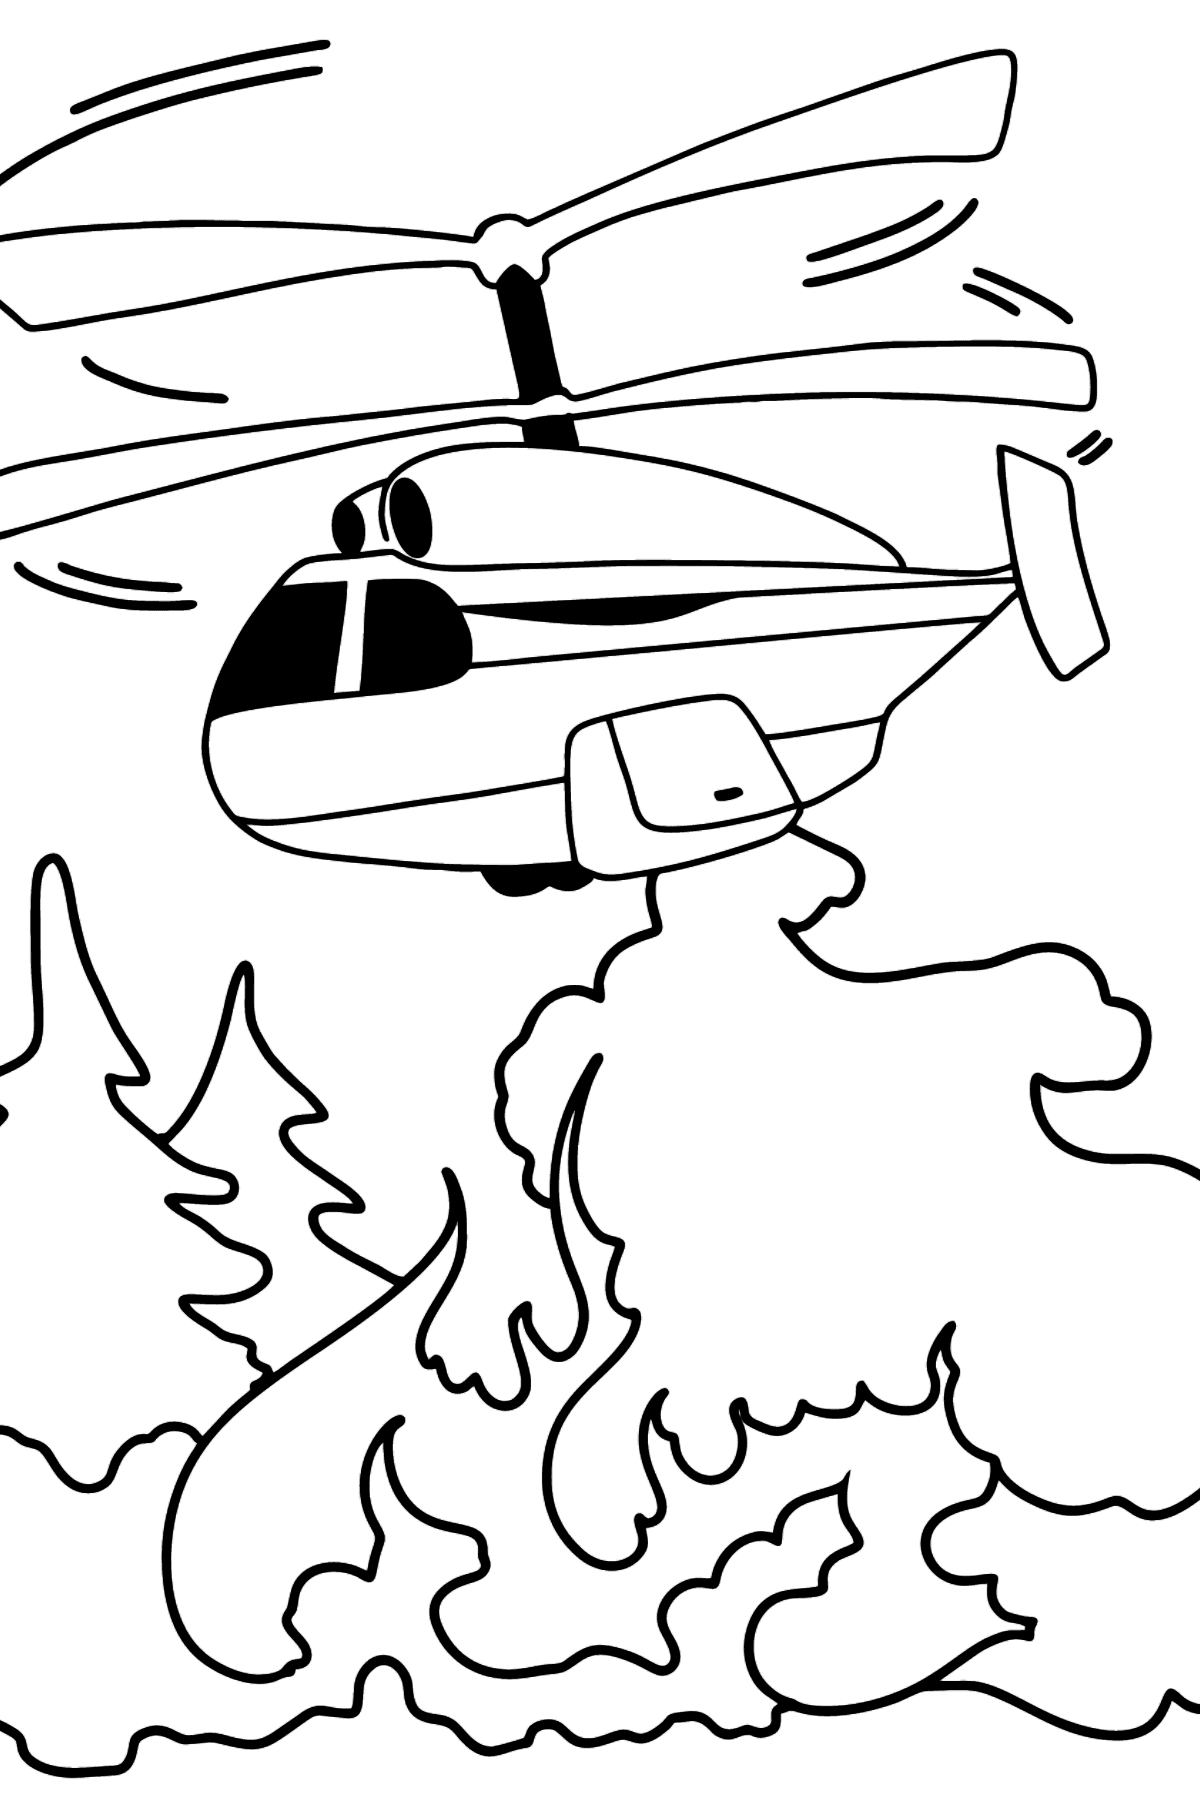 Helicopter Extinguishing Fire coloring page - Coloring Pages for Kids